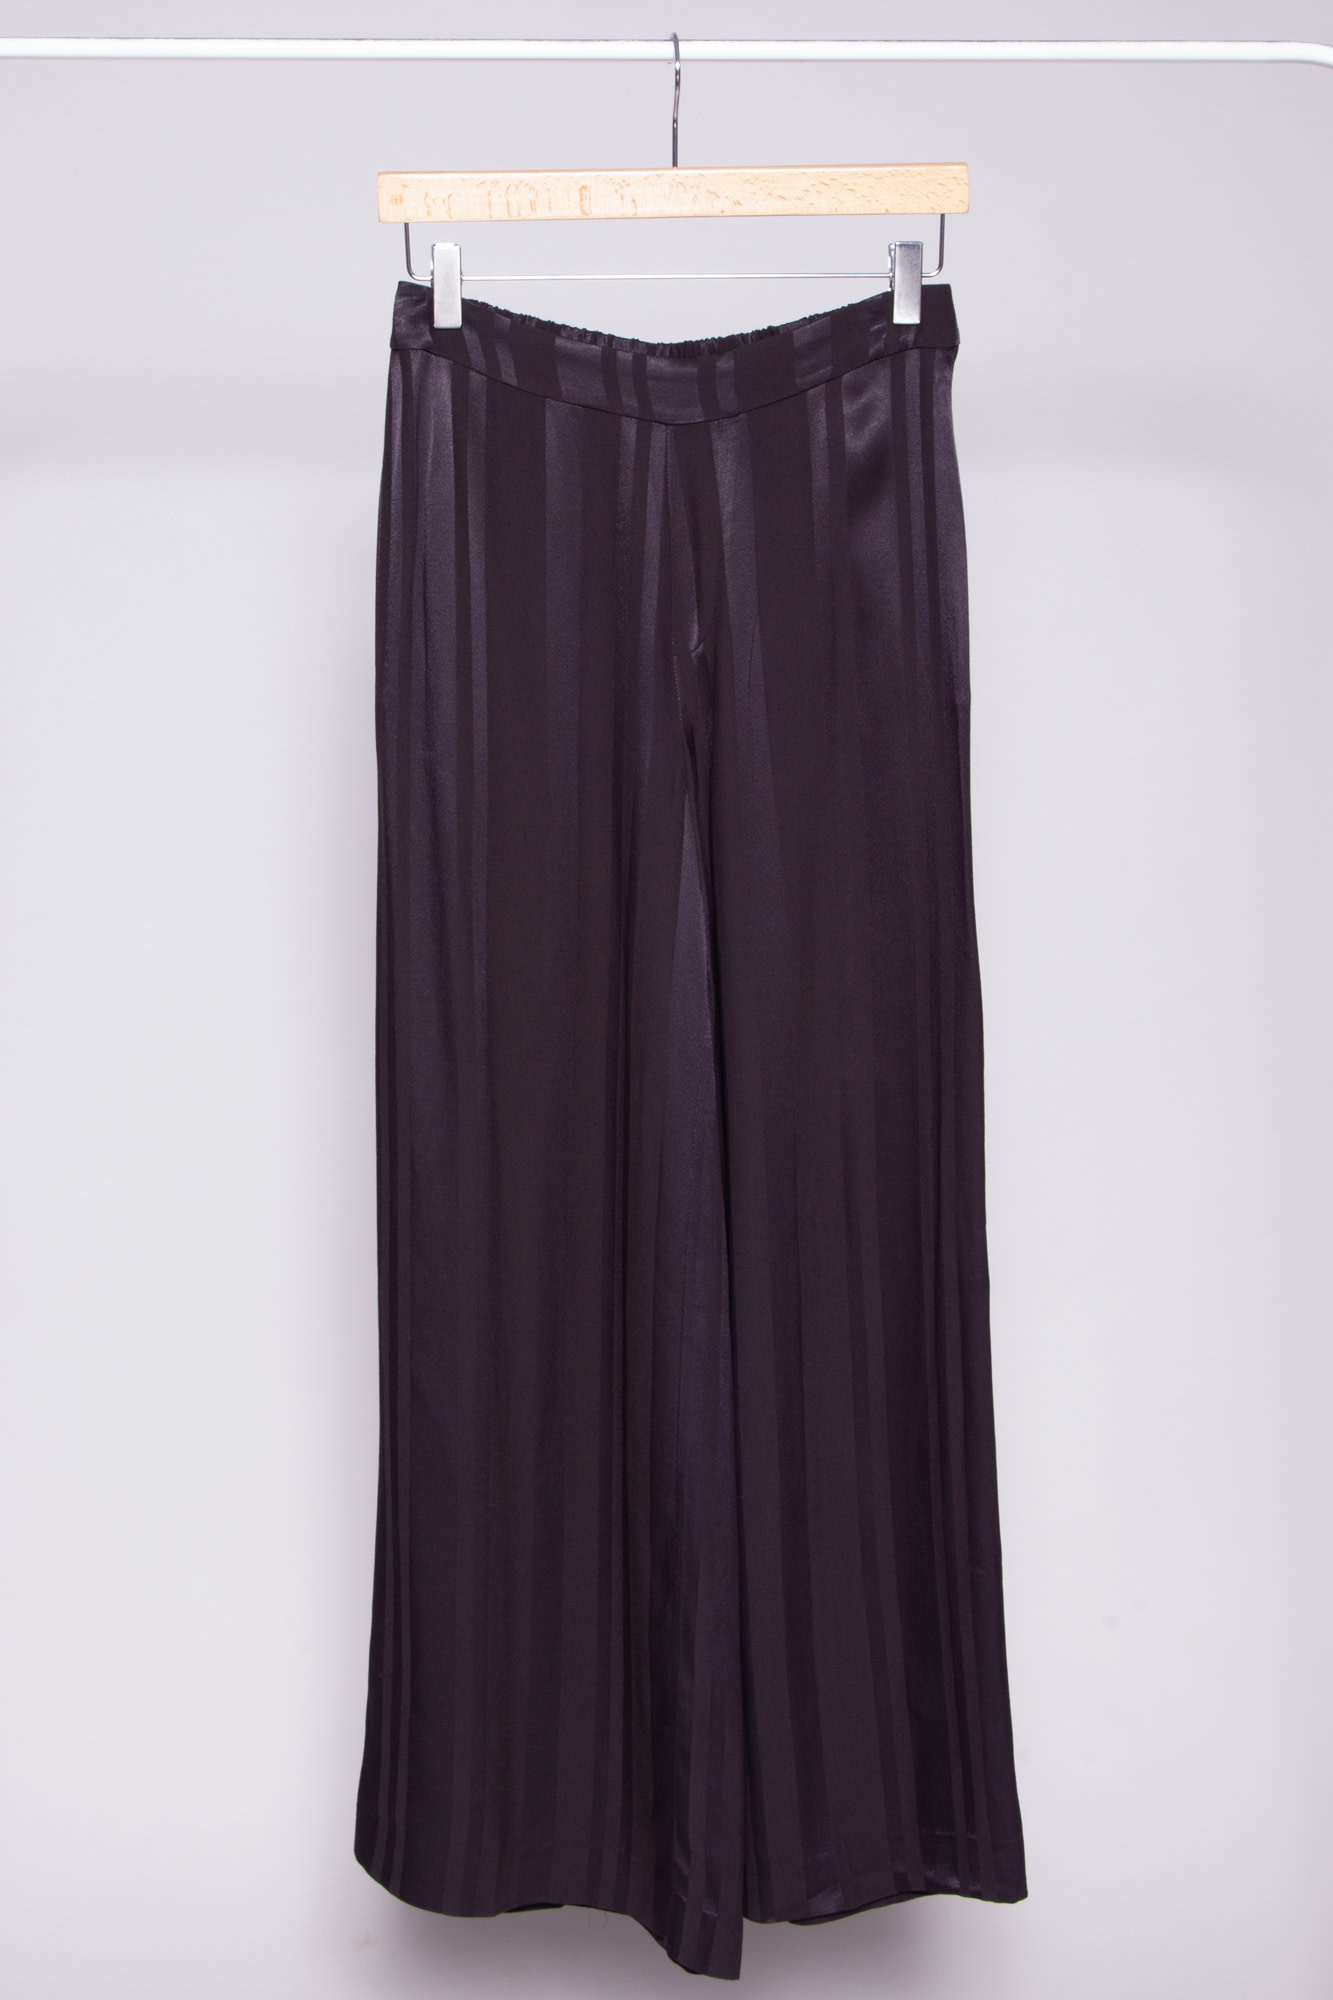 Charli BLACK WIDE LEGS PANTS - NEW WITH TAGS